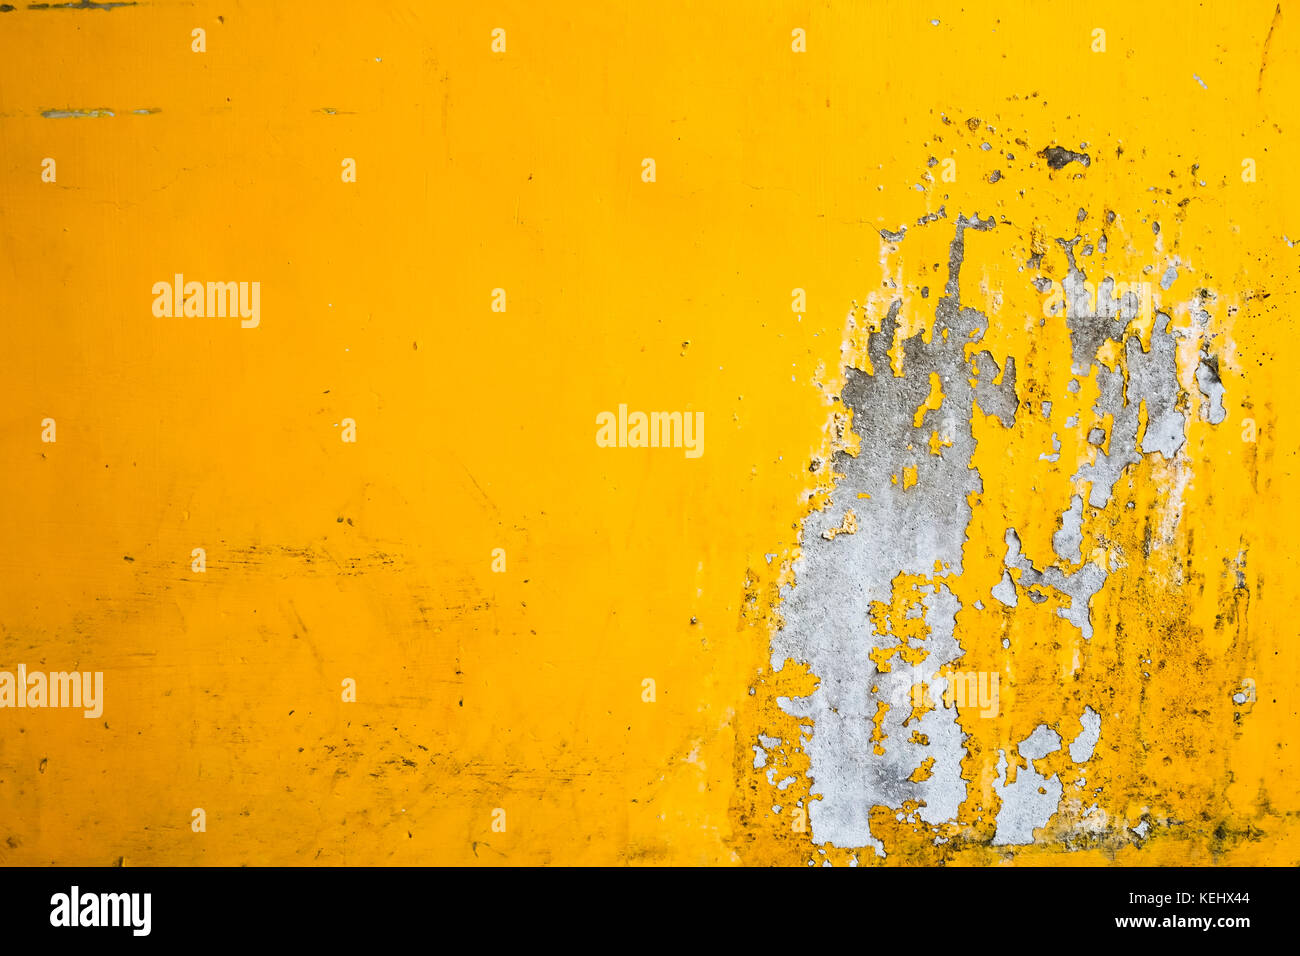 Cracked paint on old yellow wall texture Stock Photo: 163892180 - Alamy